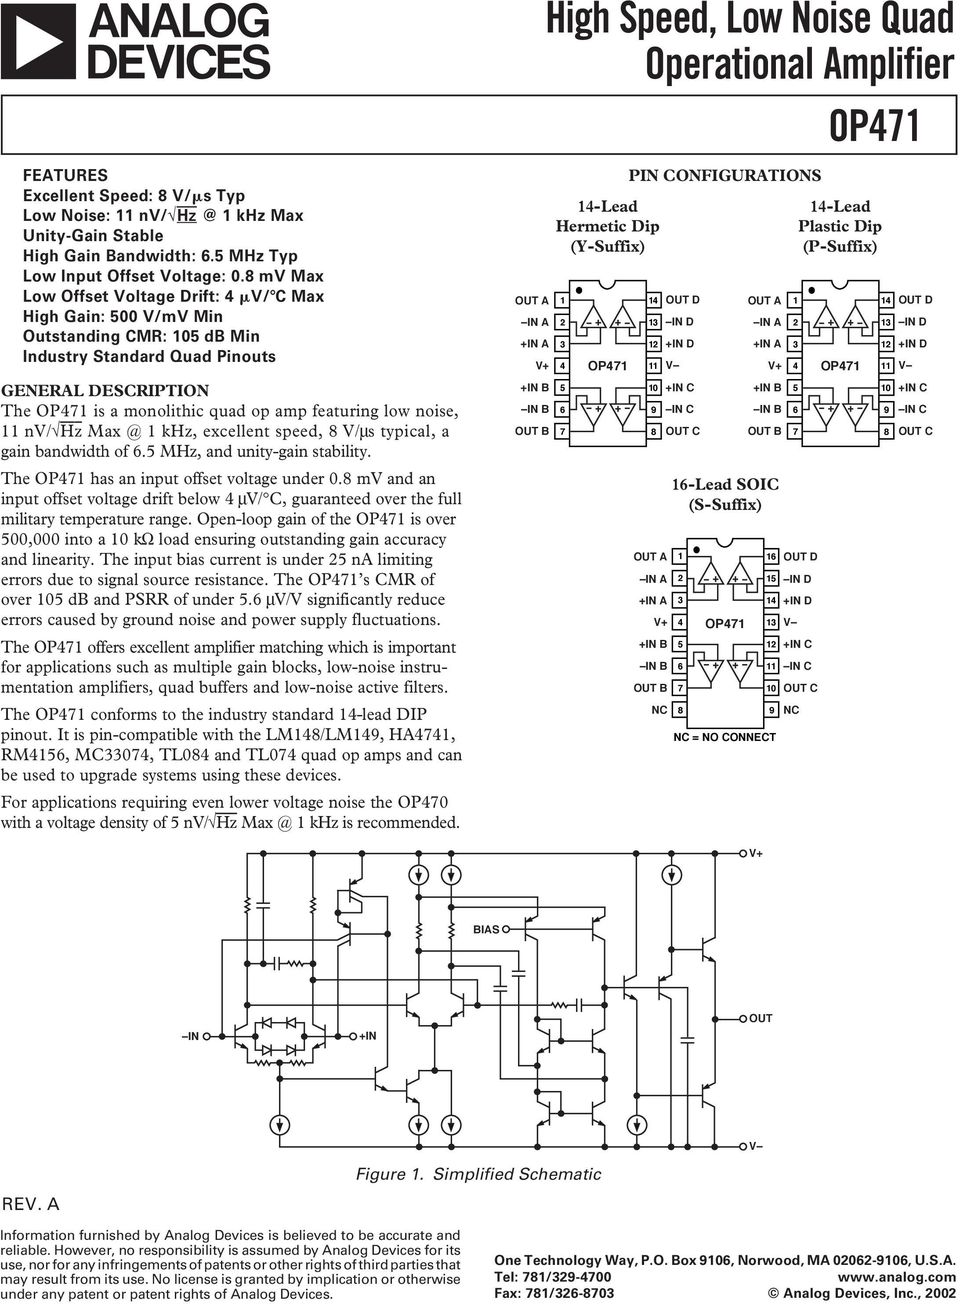 High Speed Low Noise Quad Operational Amplifier Op471 Pdf Mic Preamp Using Ne5534 Ic Circuit Diagram Max Khz Excellent V Ms Typical A Gain Bandwidth Of